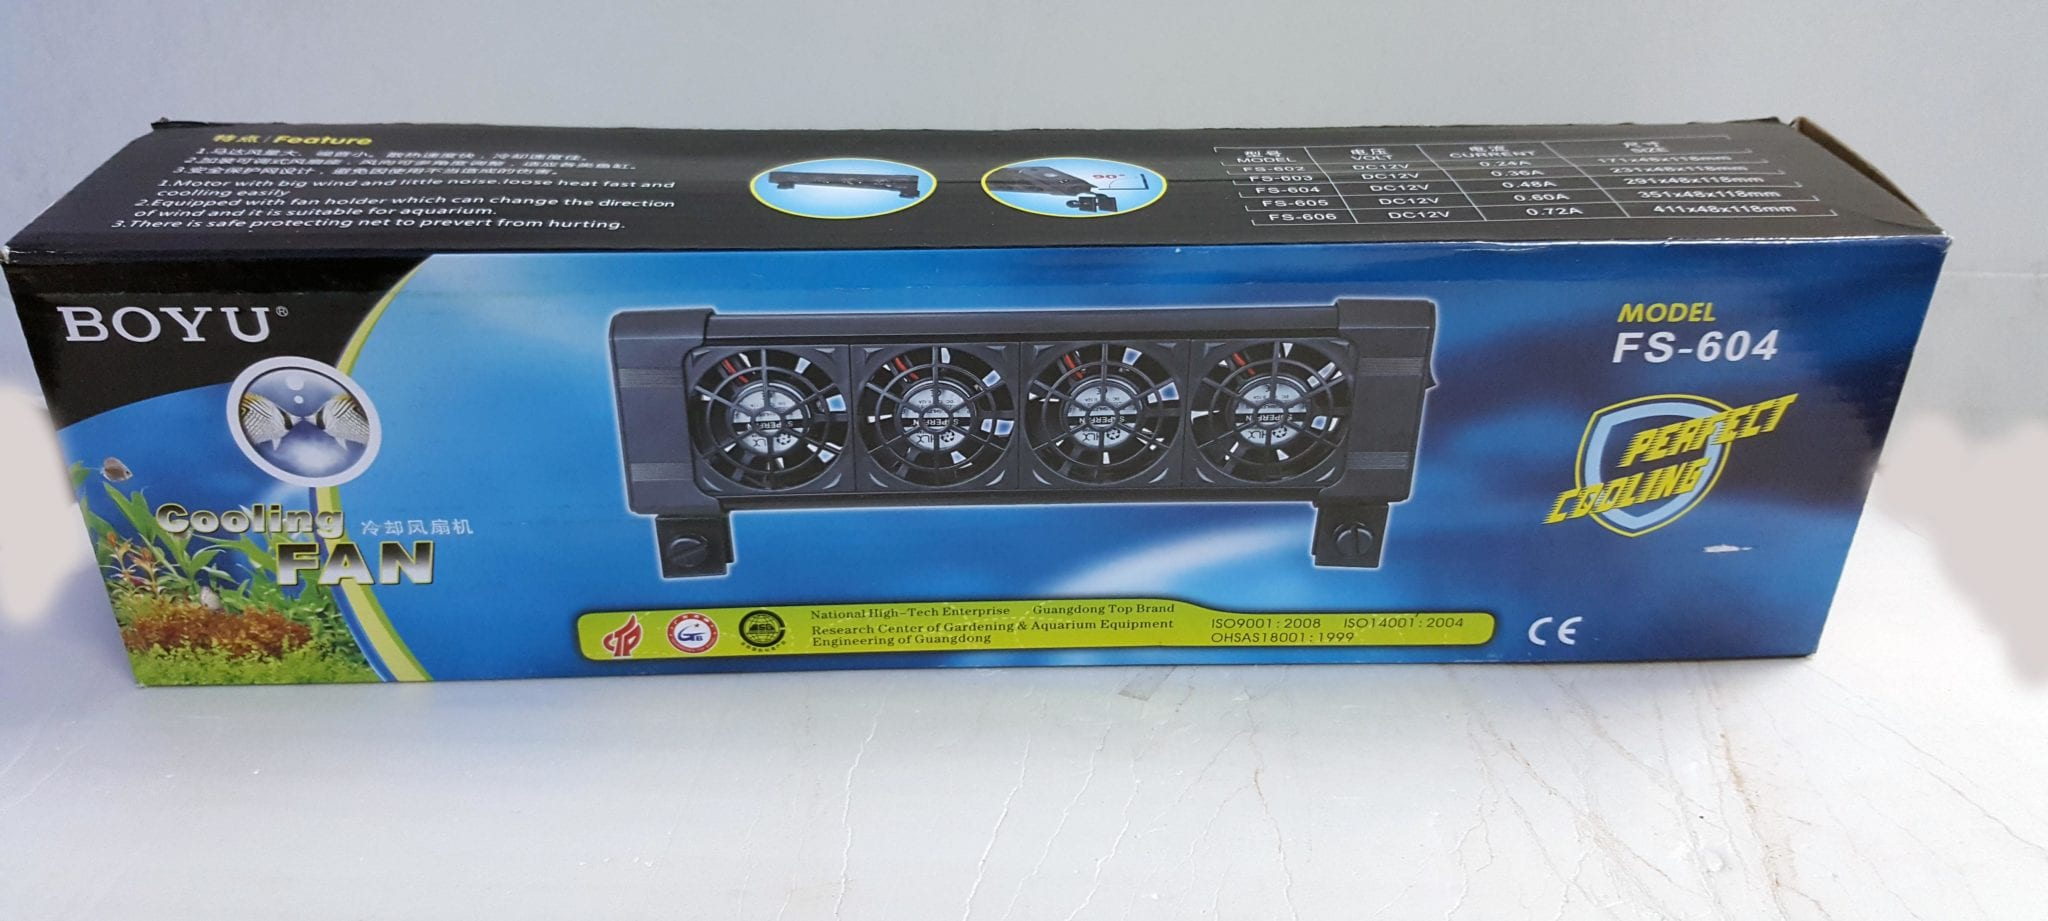 boyu aquarium Cooling Fan 4 head – MyAquariumshop line store